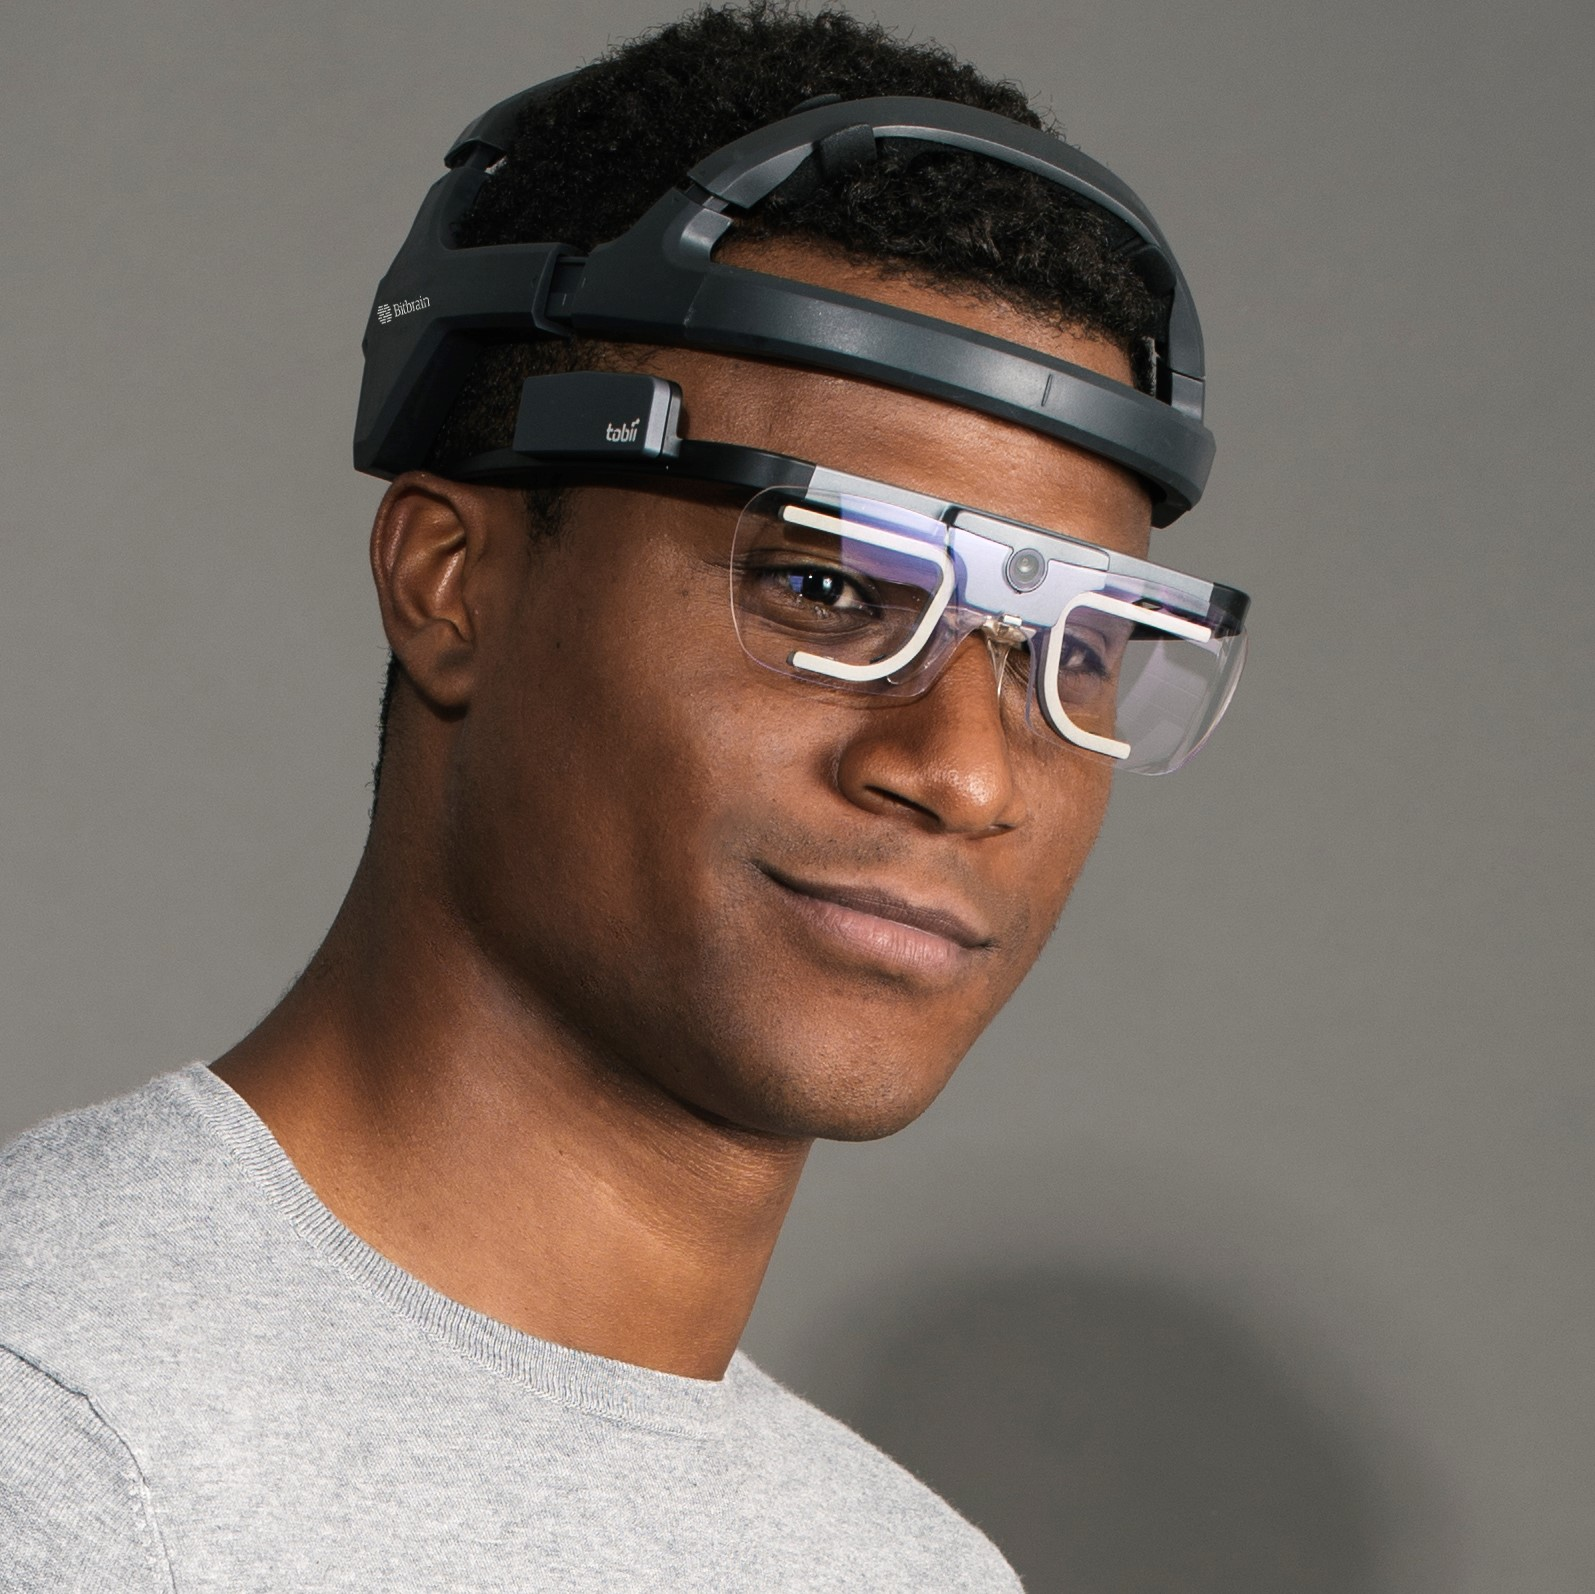 man wearing head-mounted eye tracking device